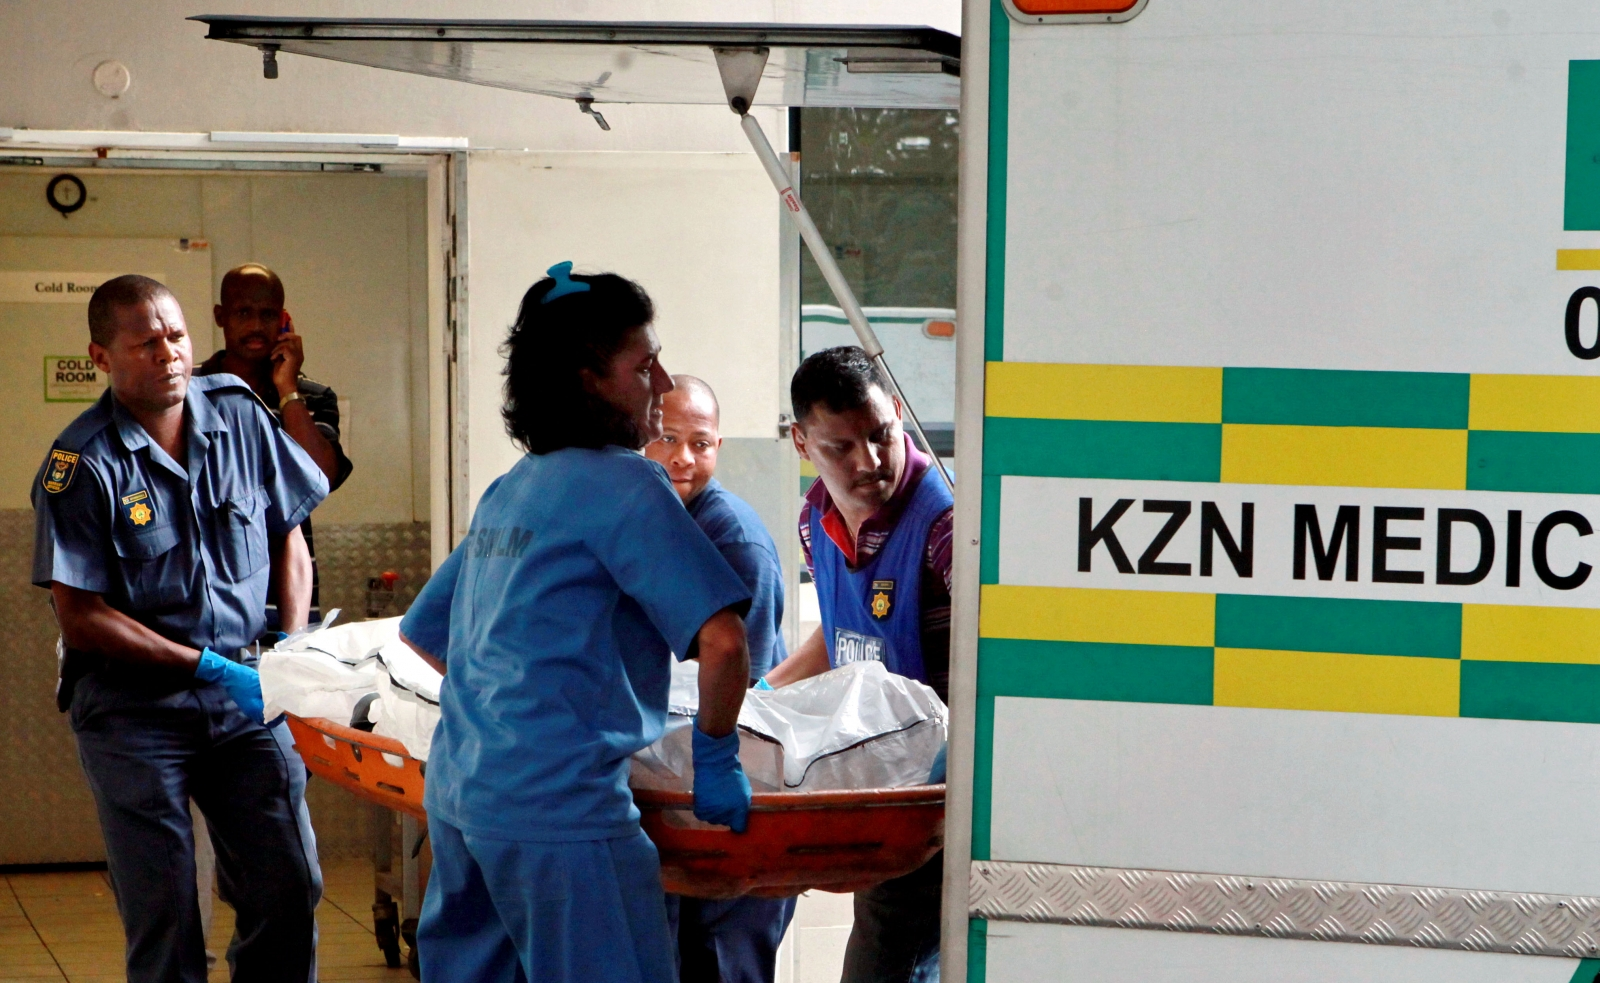 Ambulance team in South Africa